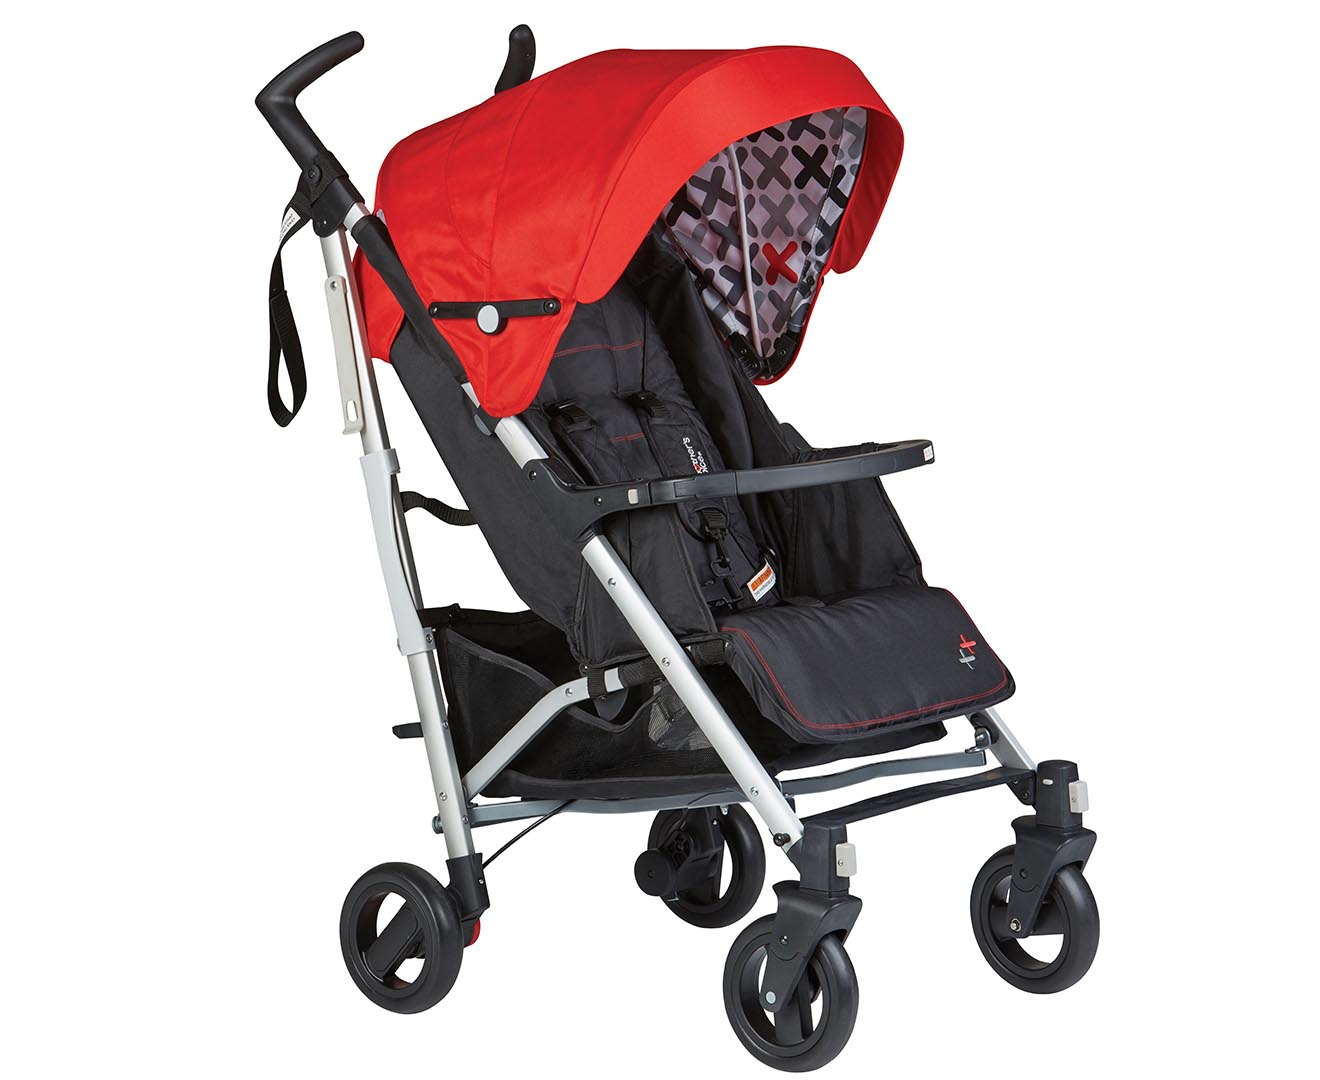 Mother's Choice 40th Anniversary Compact Stroller - Black/Re